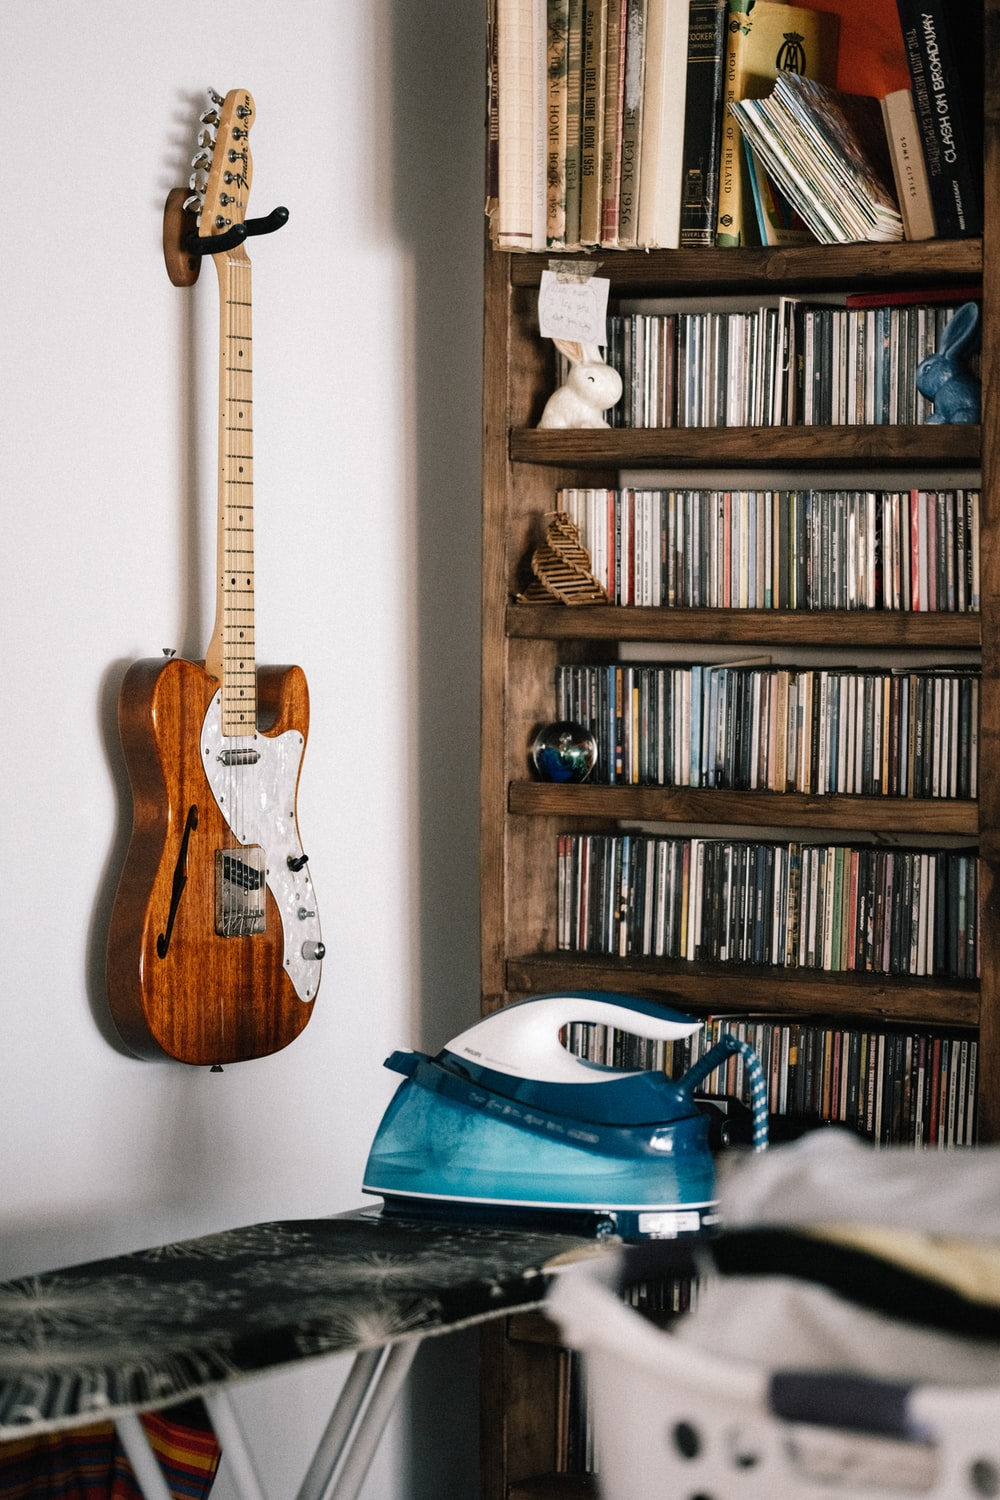 brown and white electric guitar on brown wooden shelf